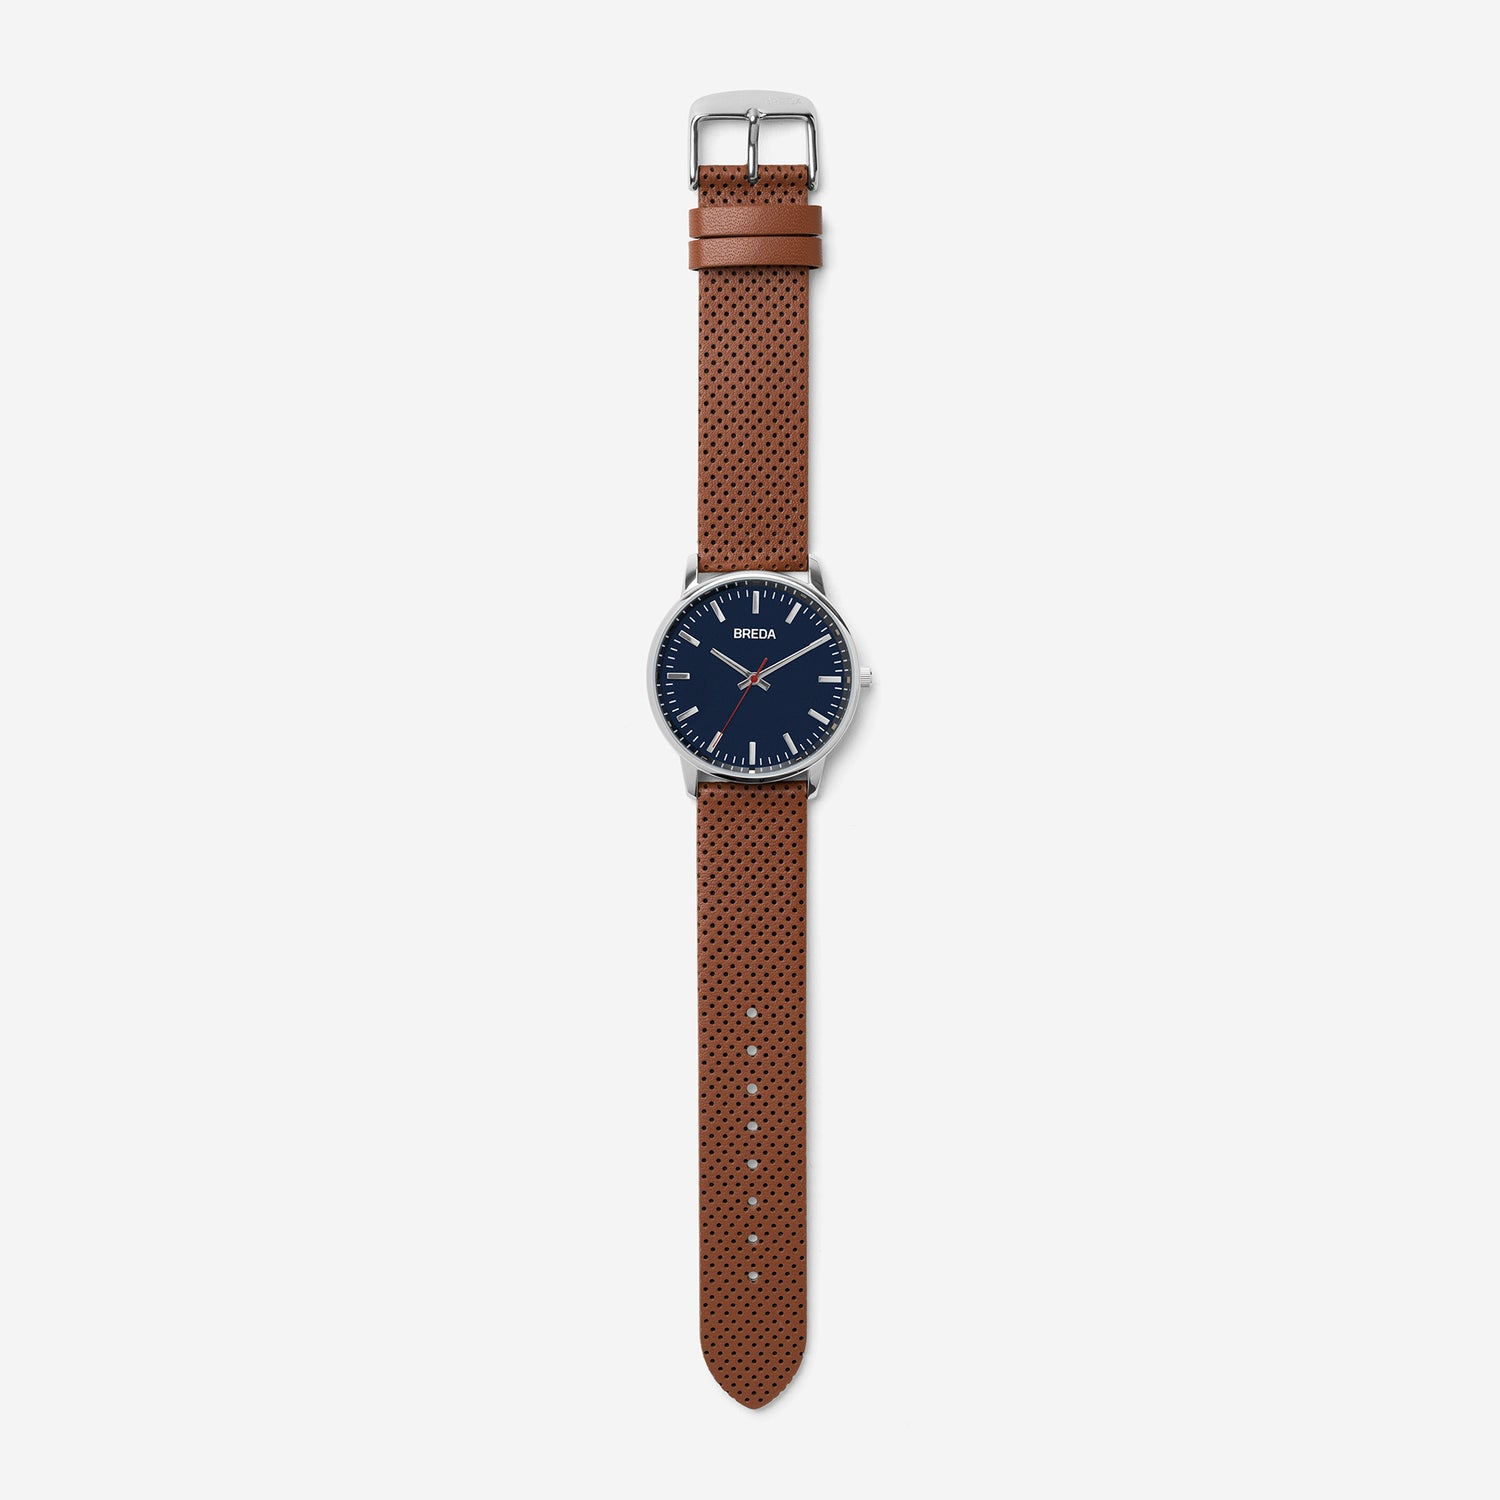 breda-zapf-1725b-silver-brown-leather-watch-long